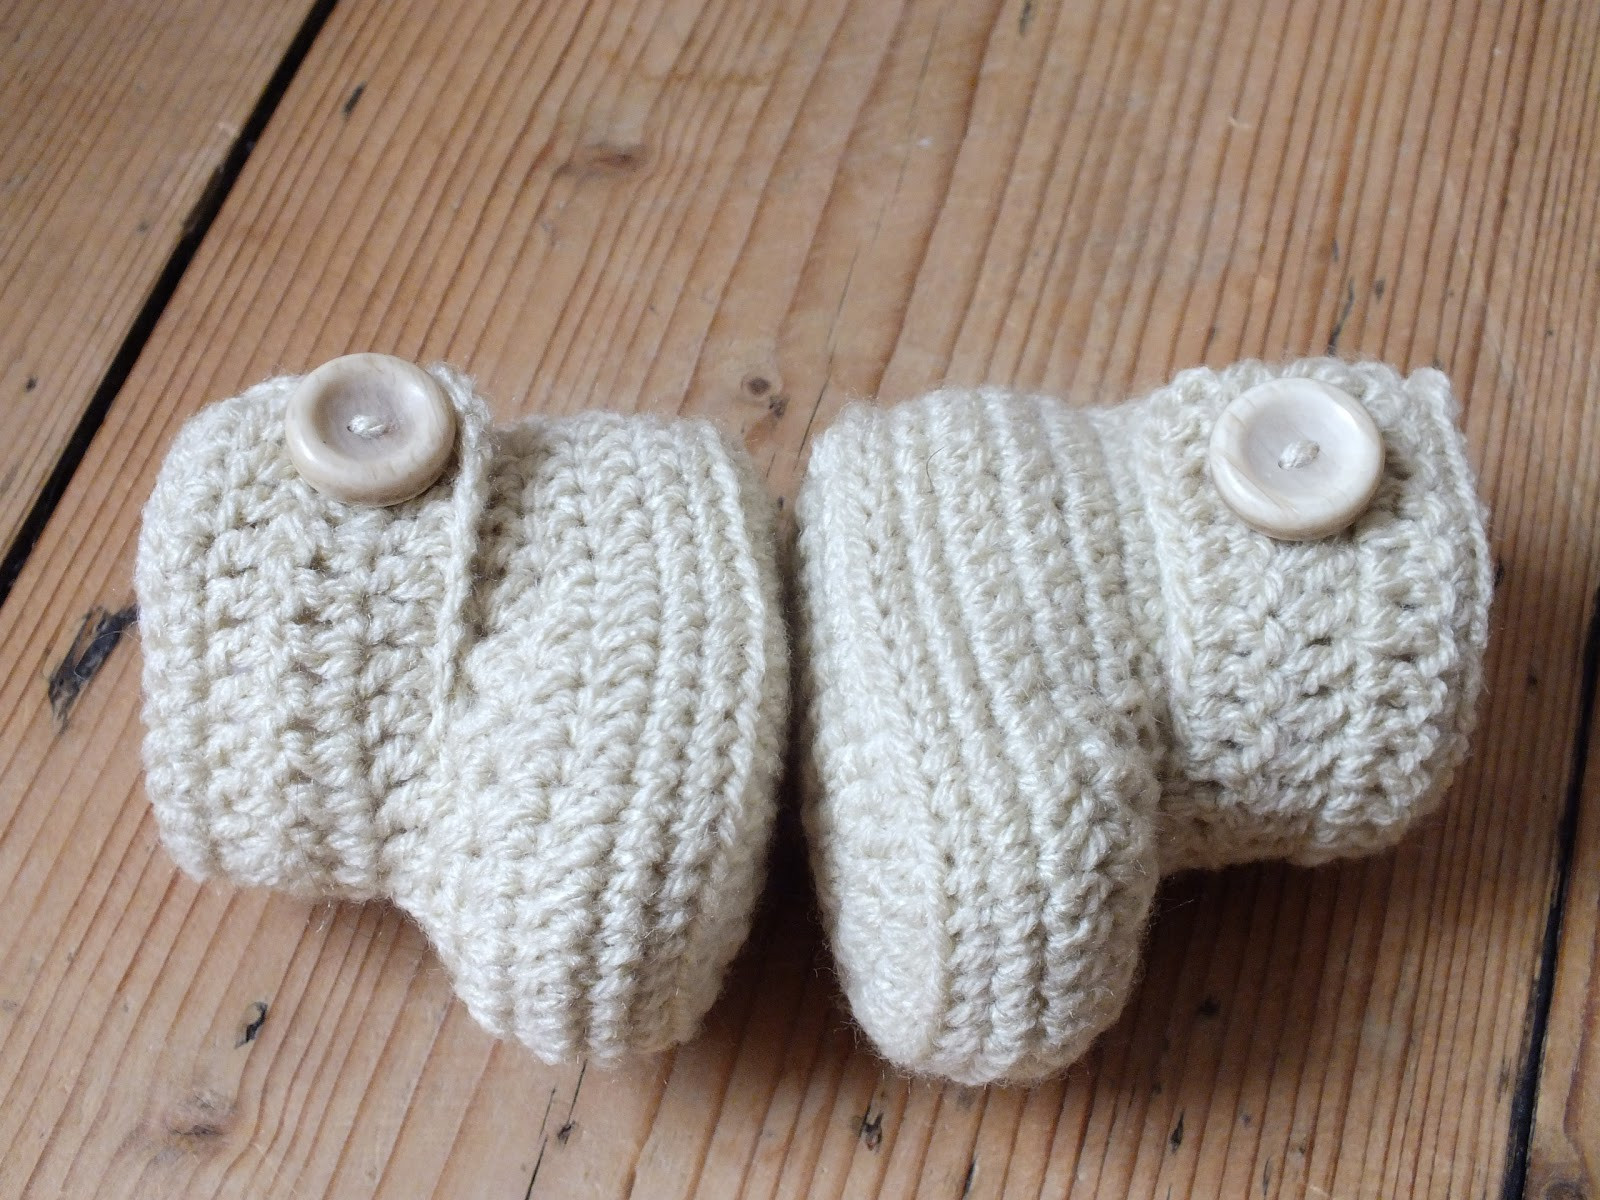 Best Of Crochet Baby Ugg Boot Patterns Crochet Uggs Boots Of New 45 Ideas Crochet Uggs Boots